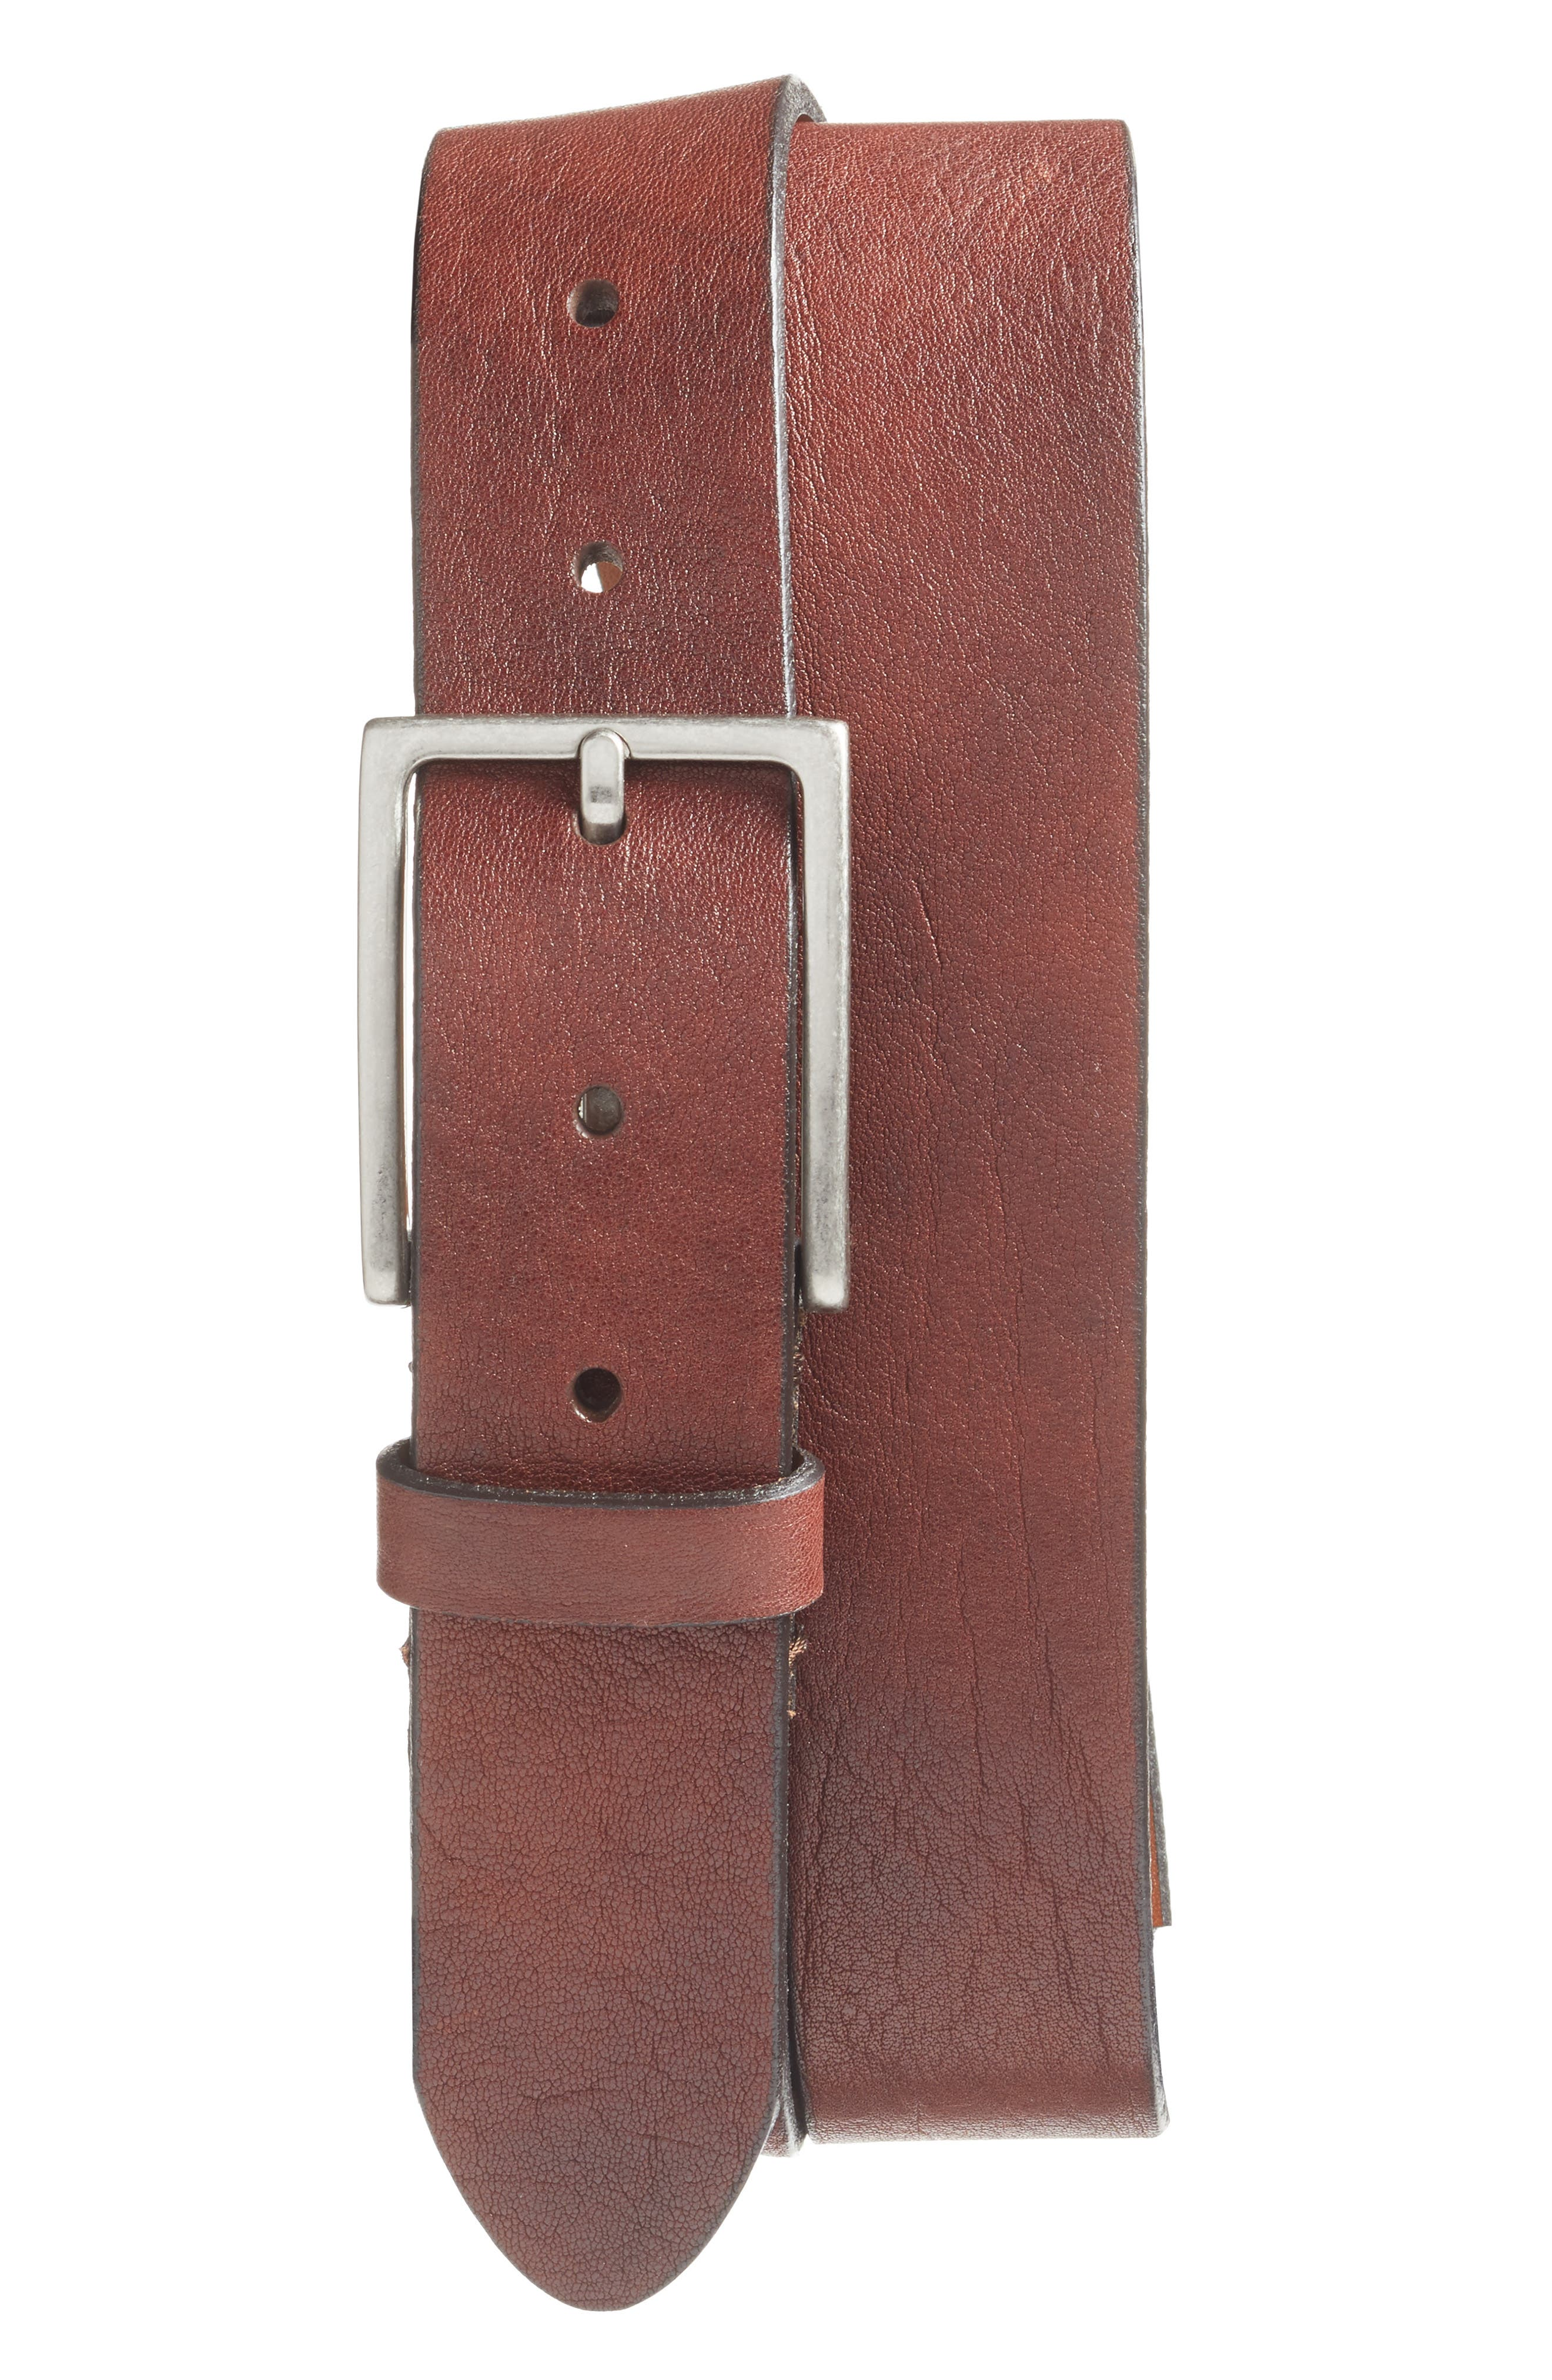 The Sicuro Leather Belt